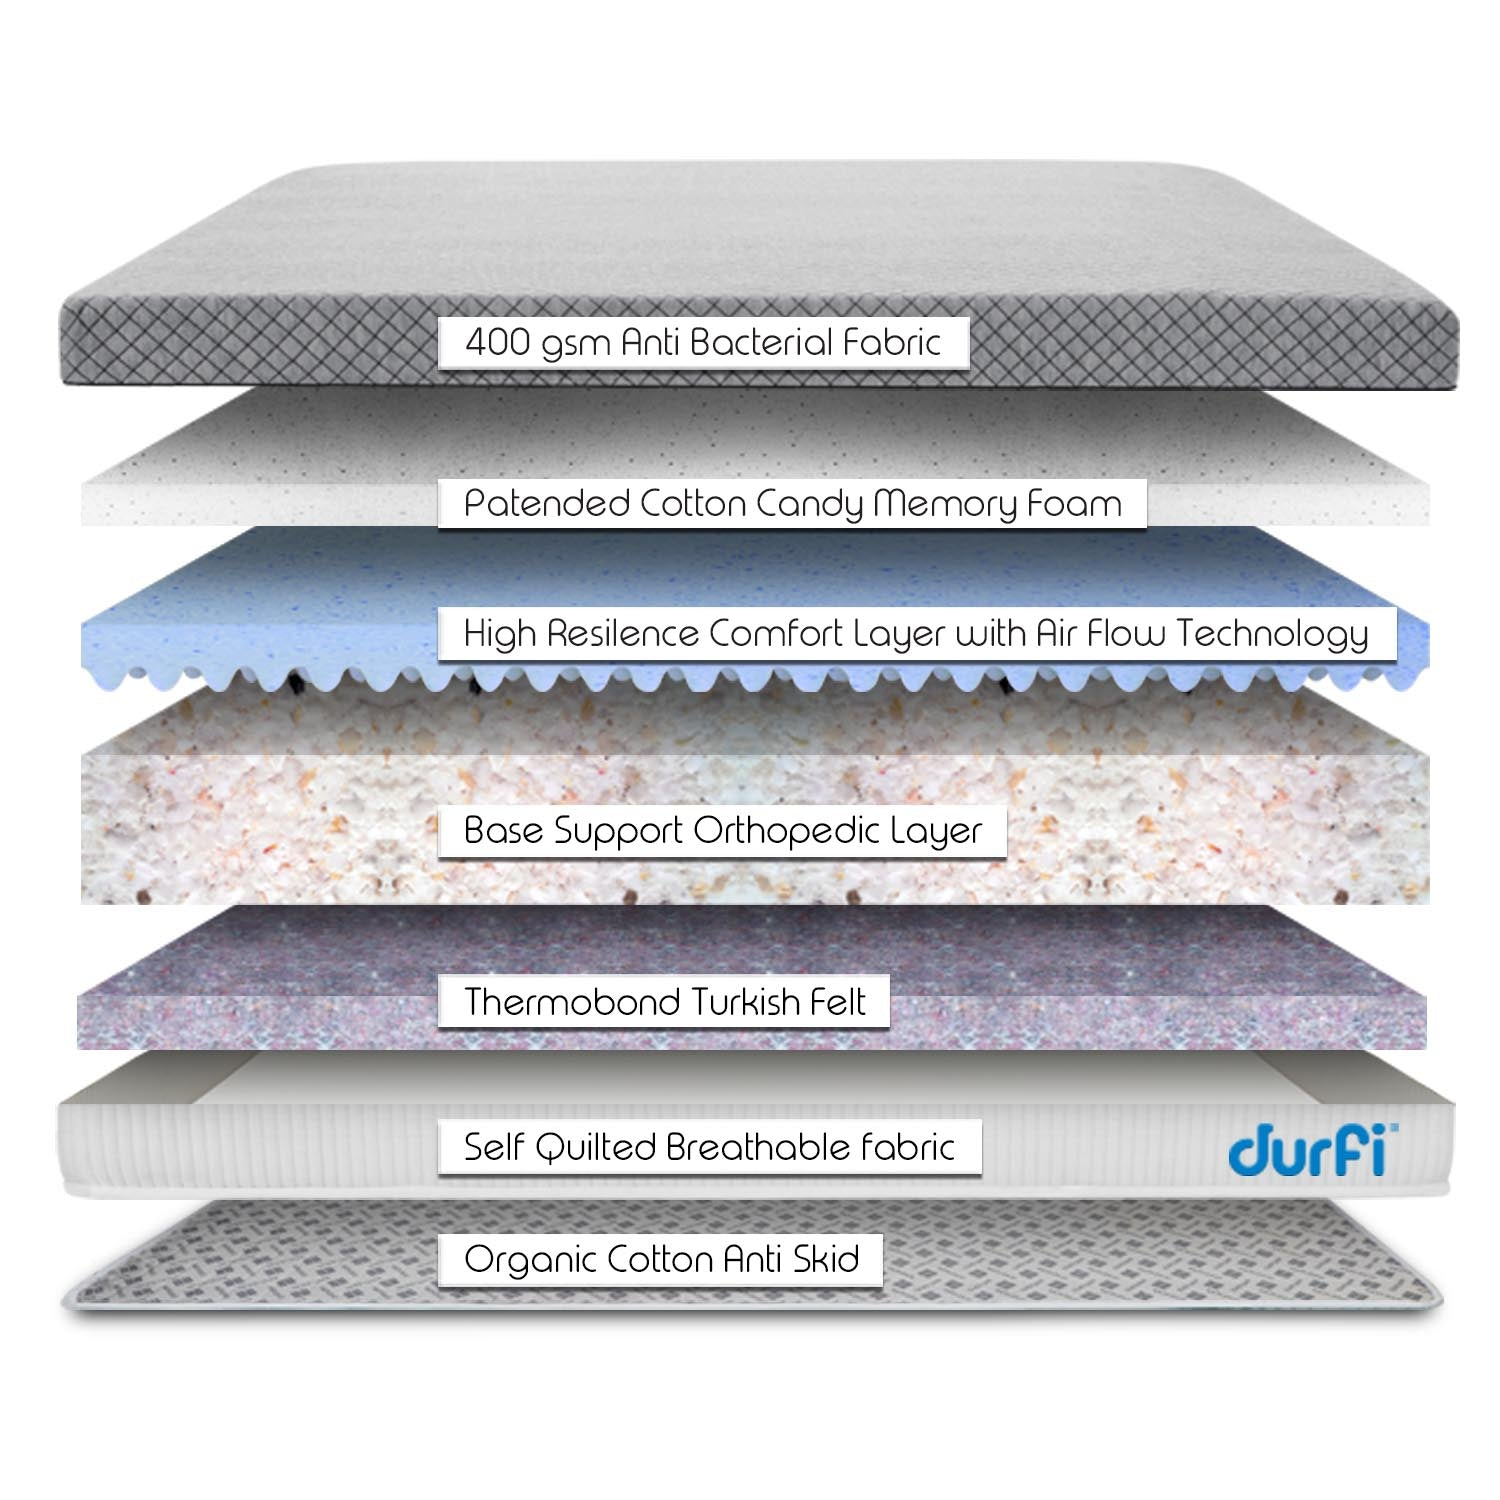 Durfi Mattress Construction Layers